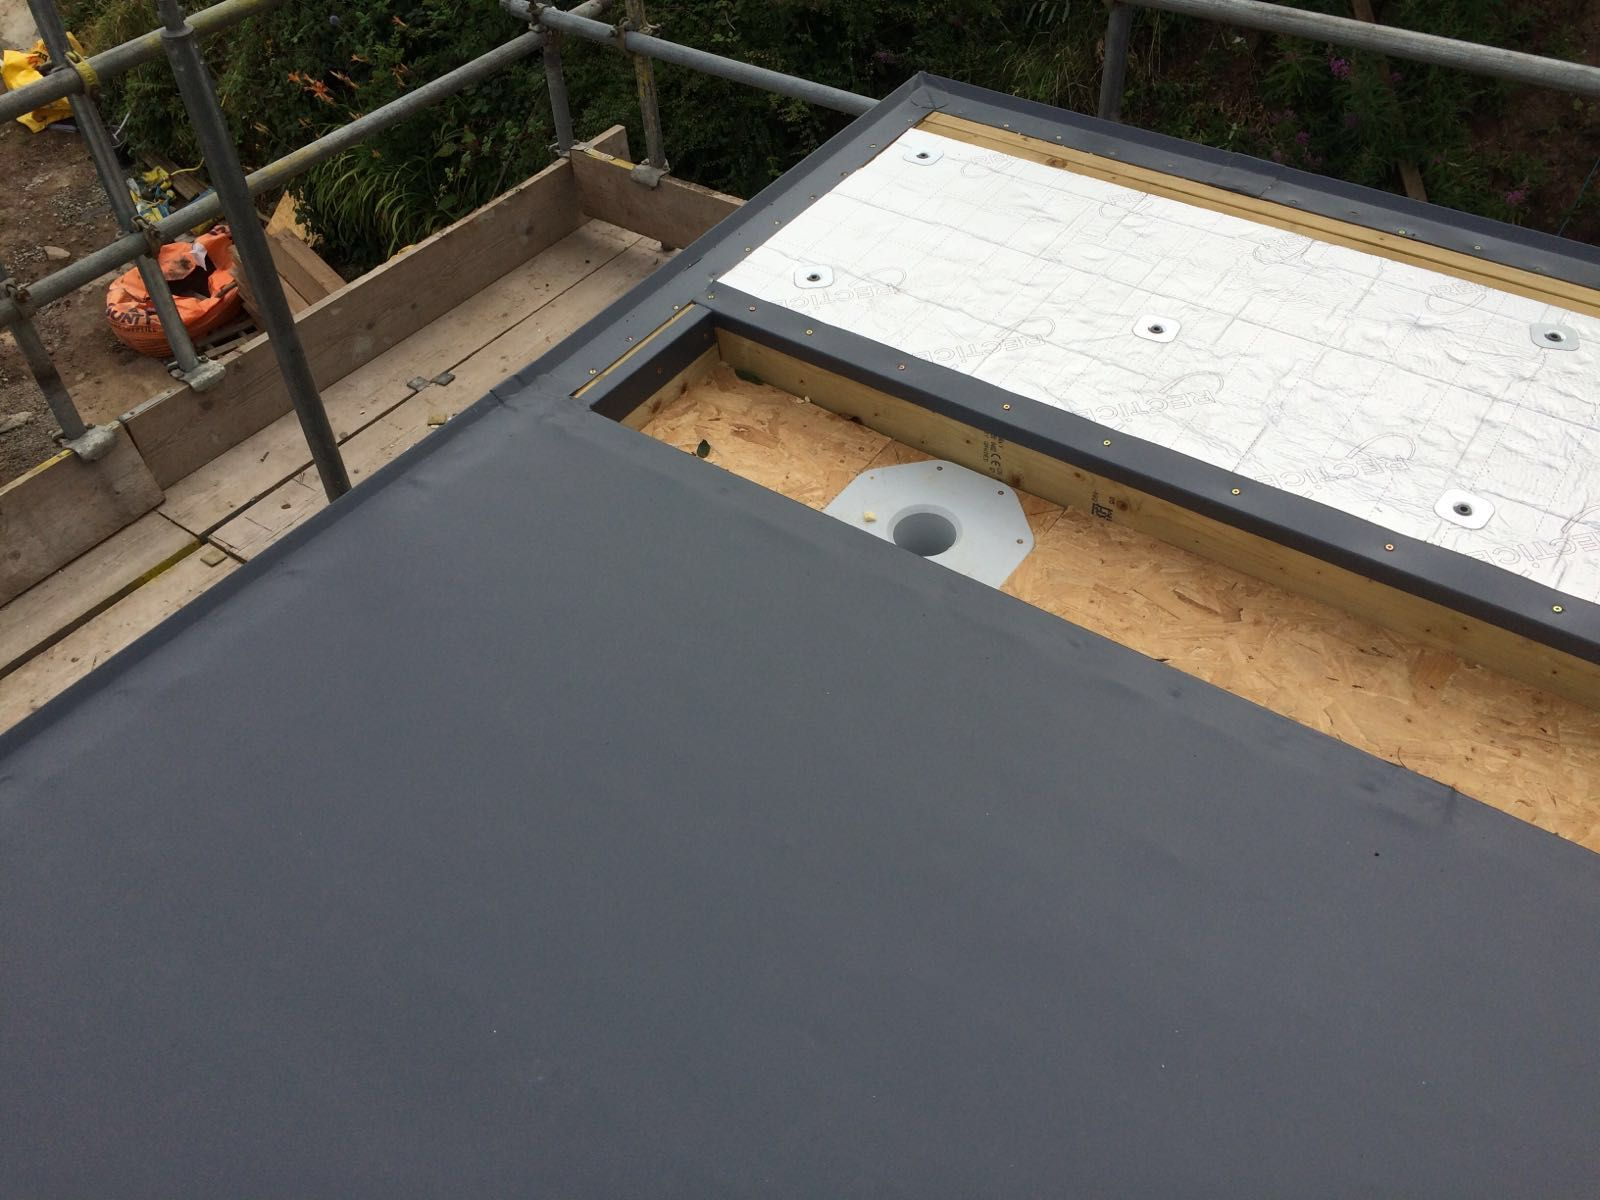 The roof construction consisted 140m2 of Sarnafil lead grey single